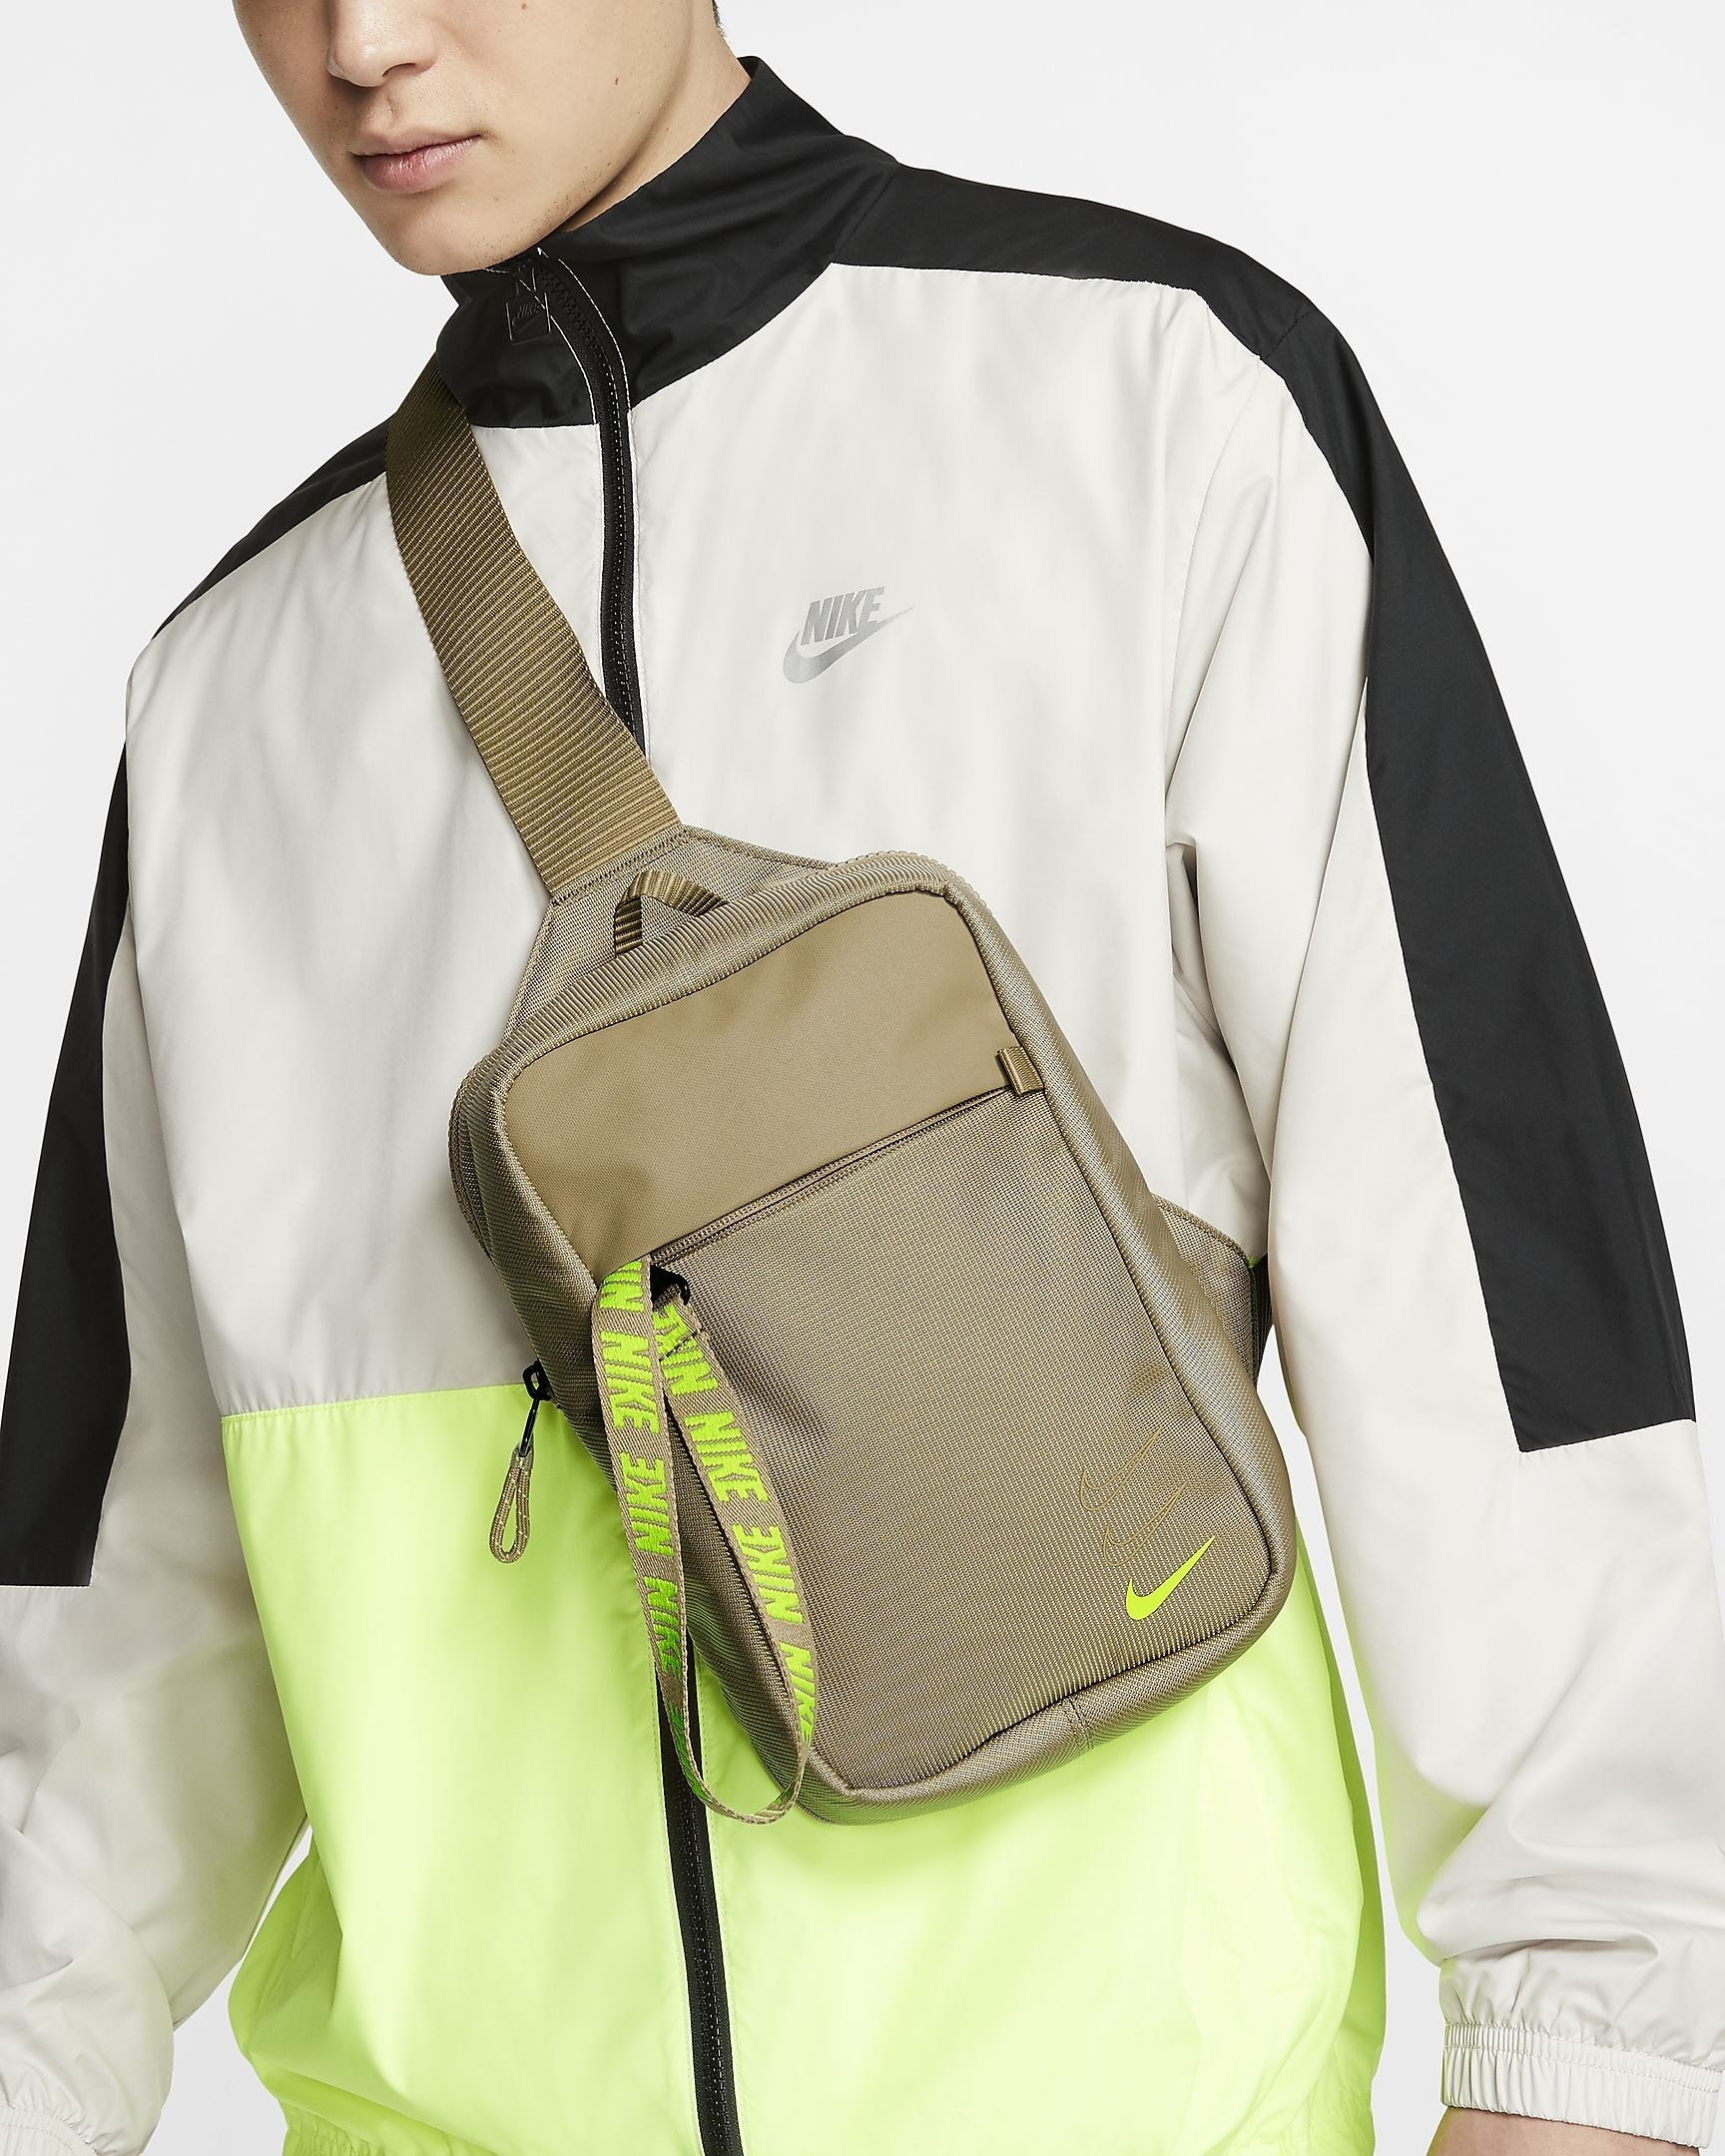 Model wears Nike green hip pack over neon green and white zip-up jacket